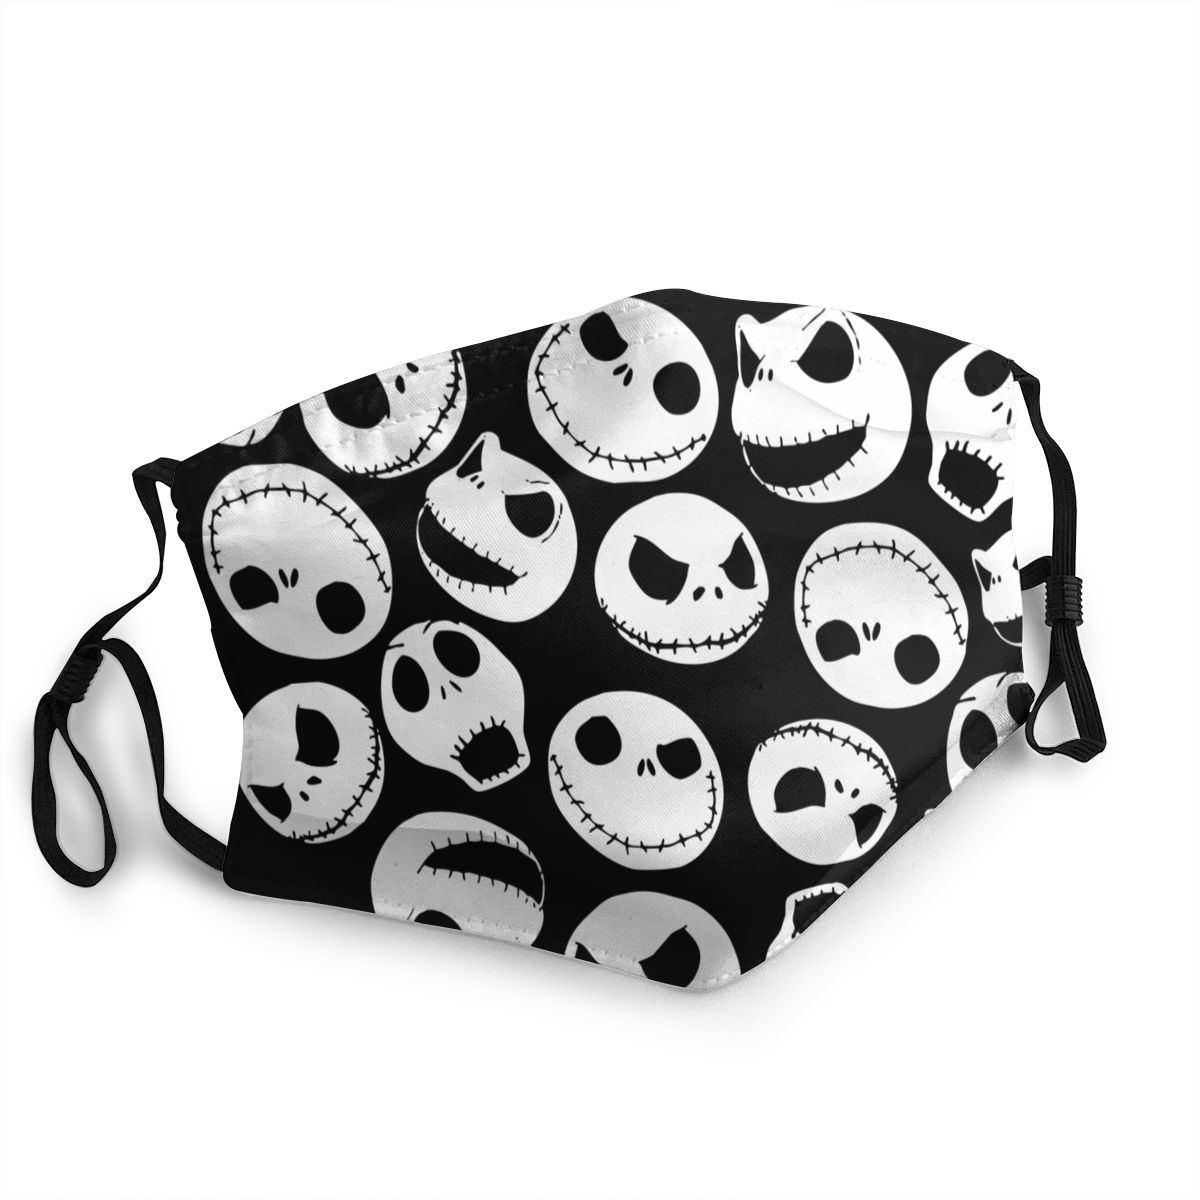 Jack Skellington Men Women Non-Disposable Face Mask Nightmare Before Christmas Anti Bacterial Dust Protection Cover Respirator